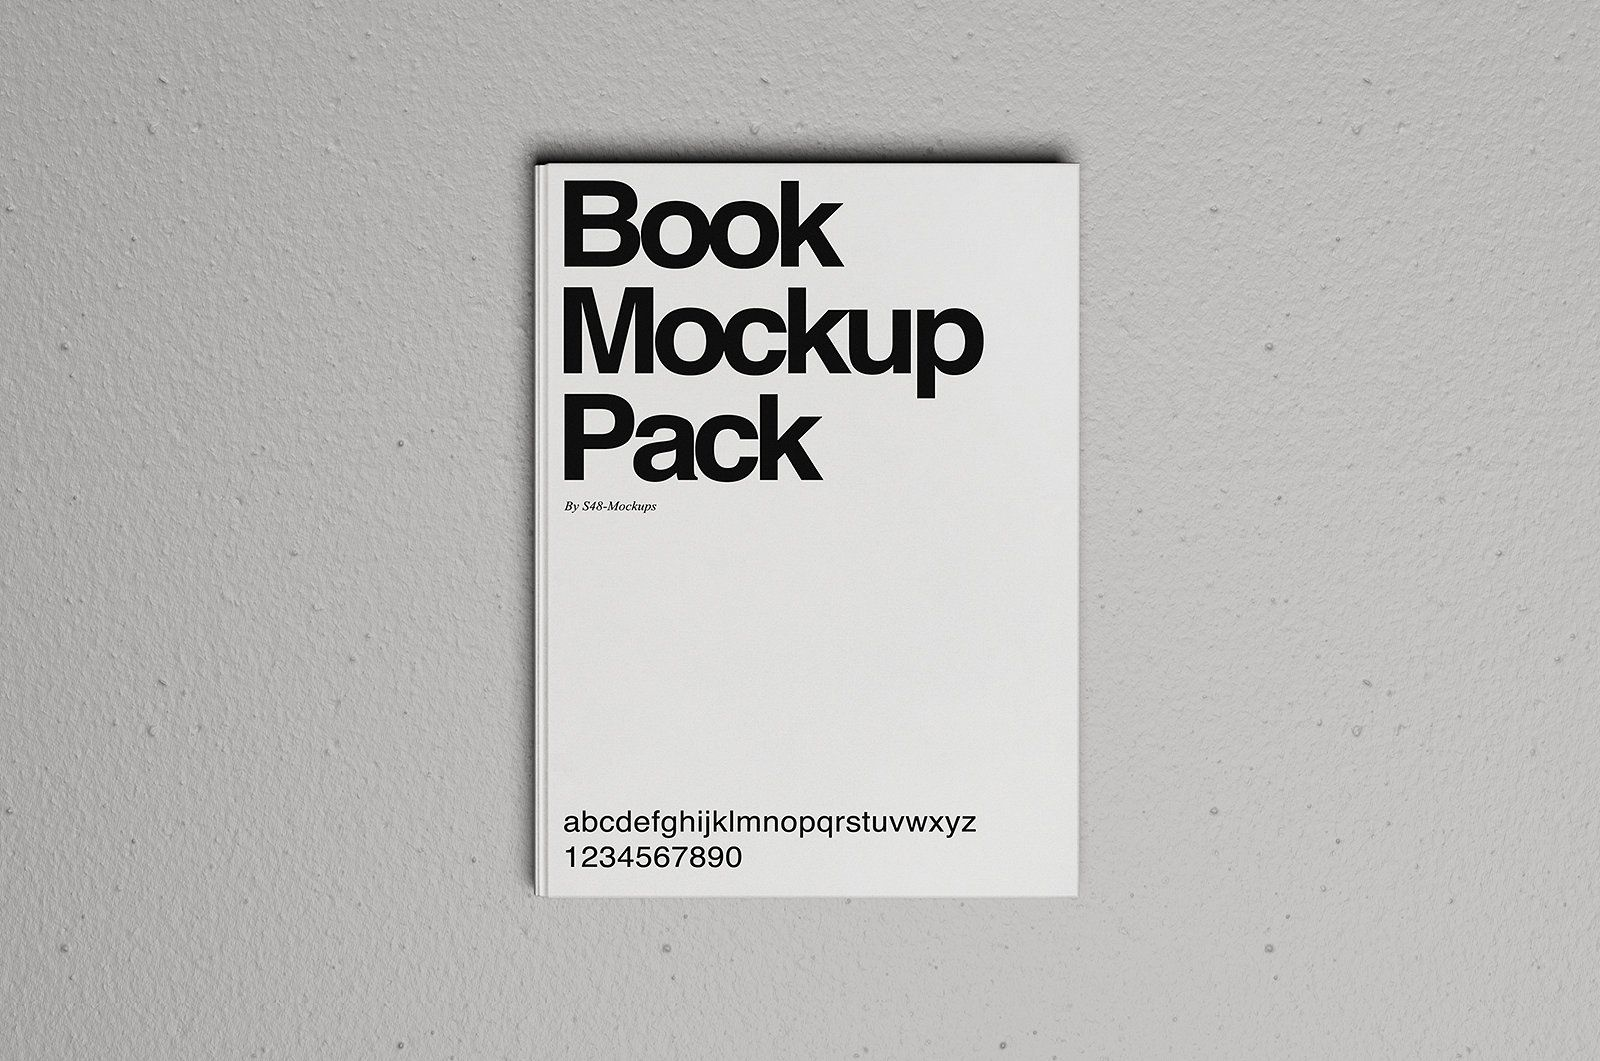 Mockup Pack Minimal Book Covers Book Cover Mockup Minimal Book Book Cover Design